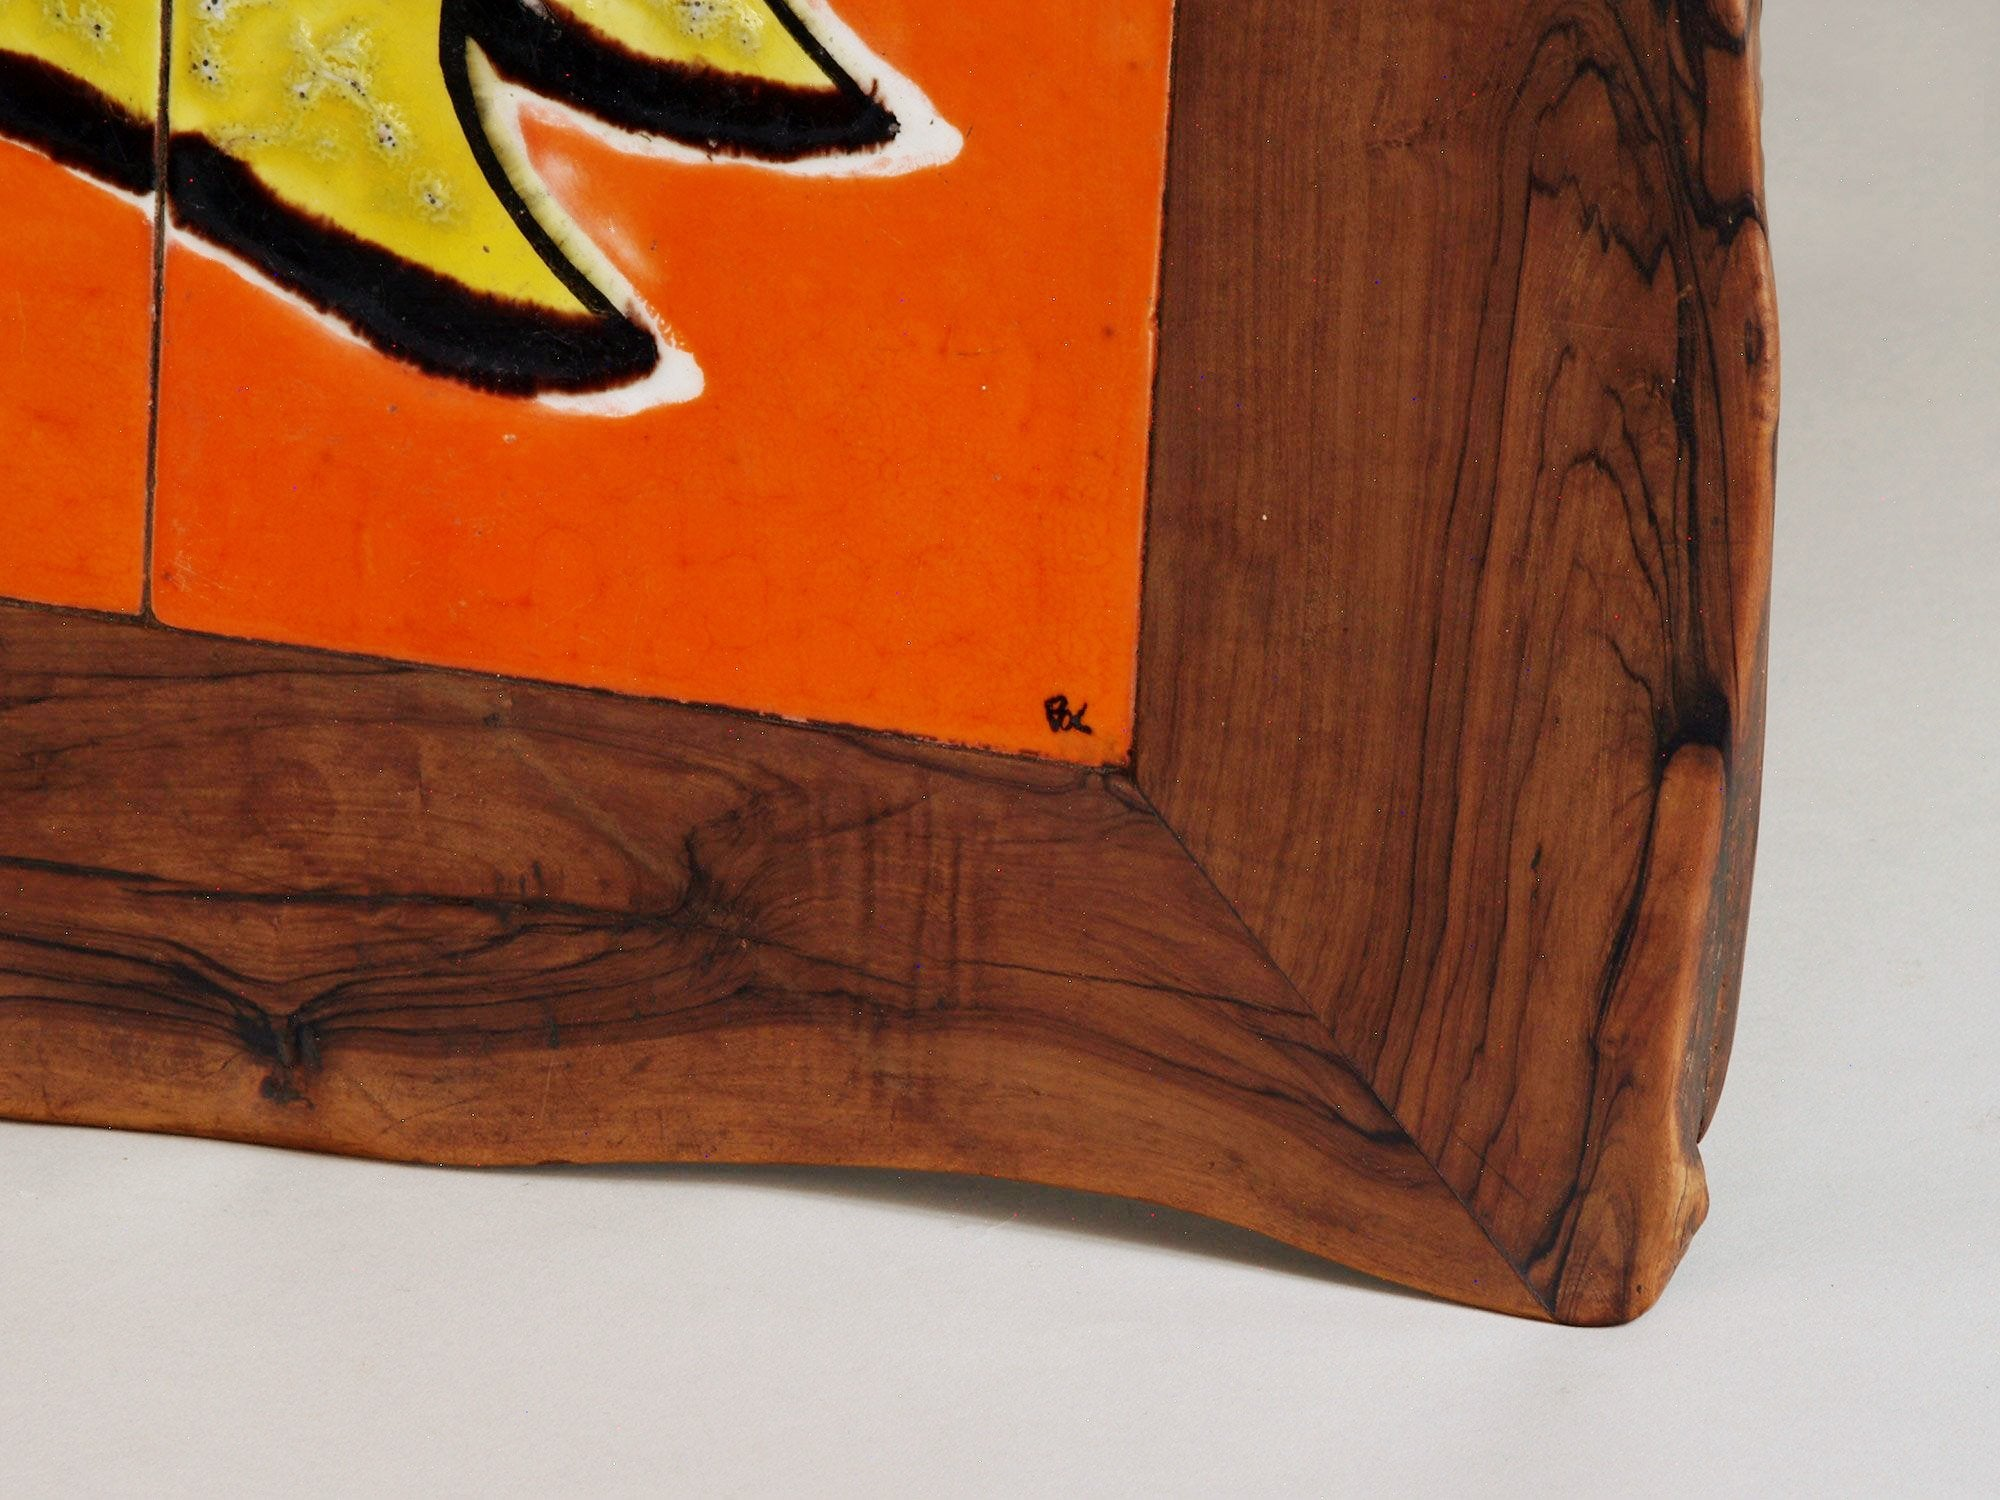 Guéridon primitiviste en bois sculpté et céramique par Pol, France (vers 1960)..Primitivist occasionnal coffee table by Pol, France (circa 1960)